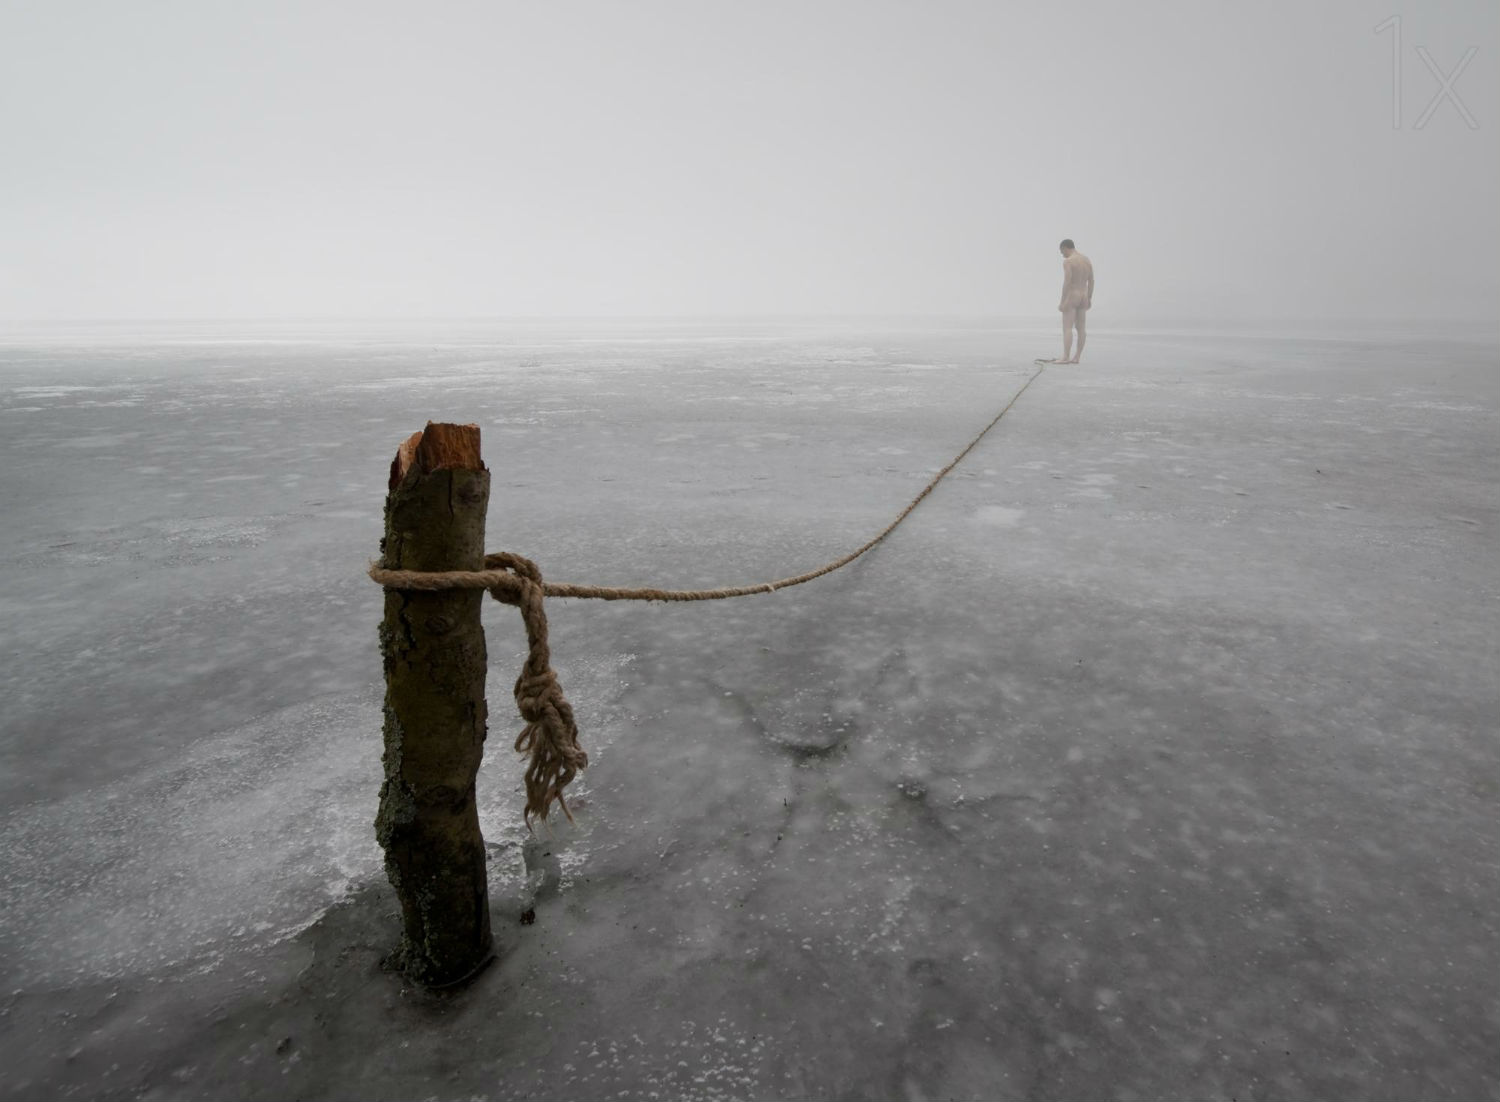 leszek paradowski photography landscape dramatic ice rope illusion